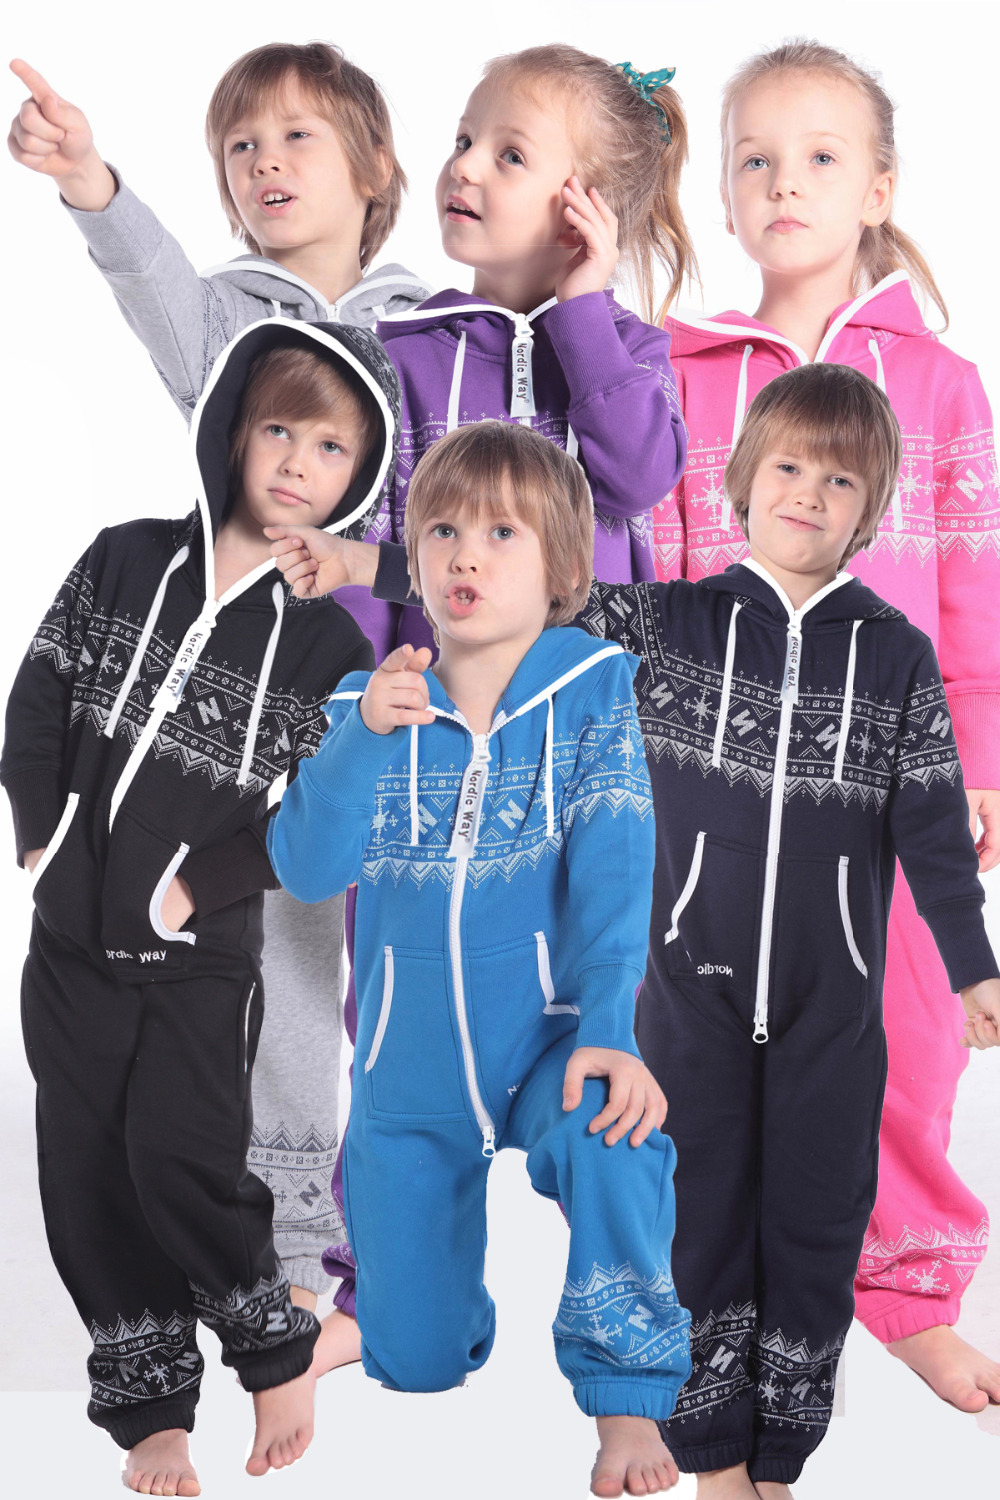 Nordic Way Printed One Piece Jumpusit All In One Fashion Kids Romper Hoody Fleece Overall handy all in one screwdrivers toolkit 31 piece set